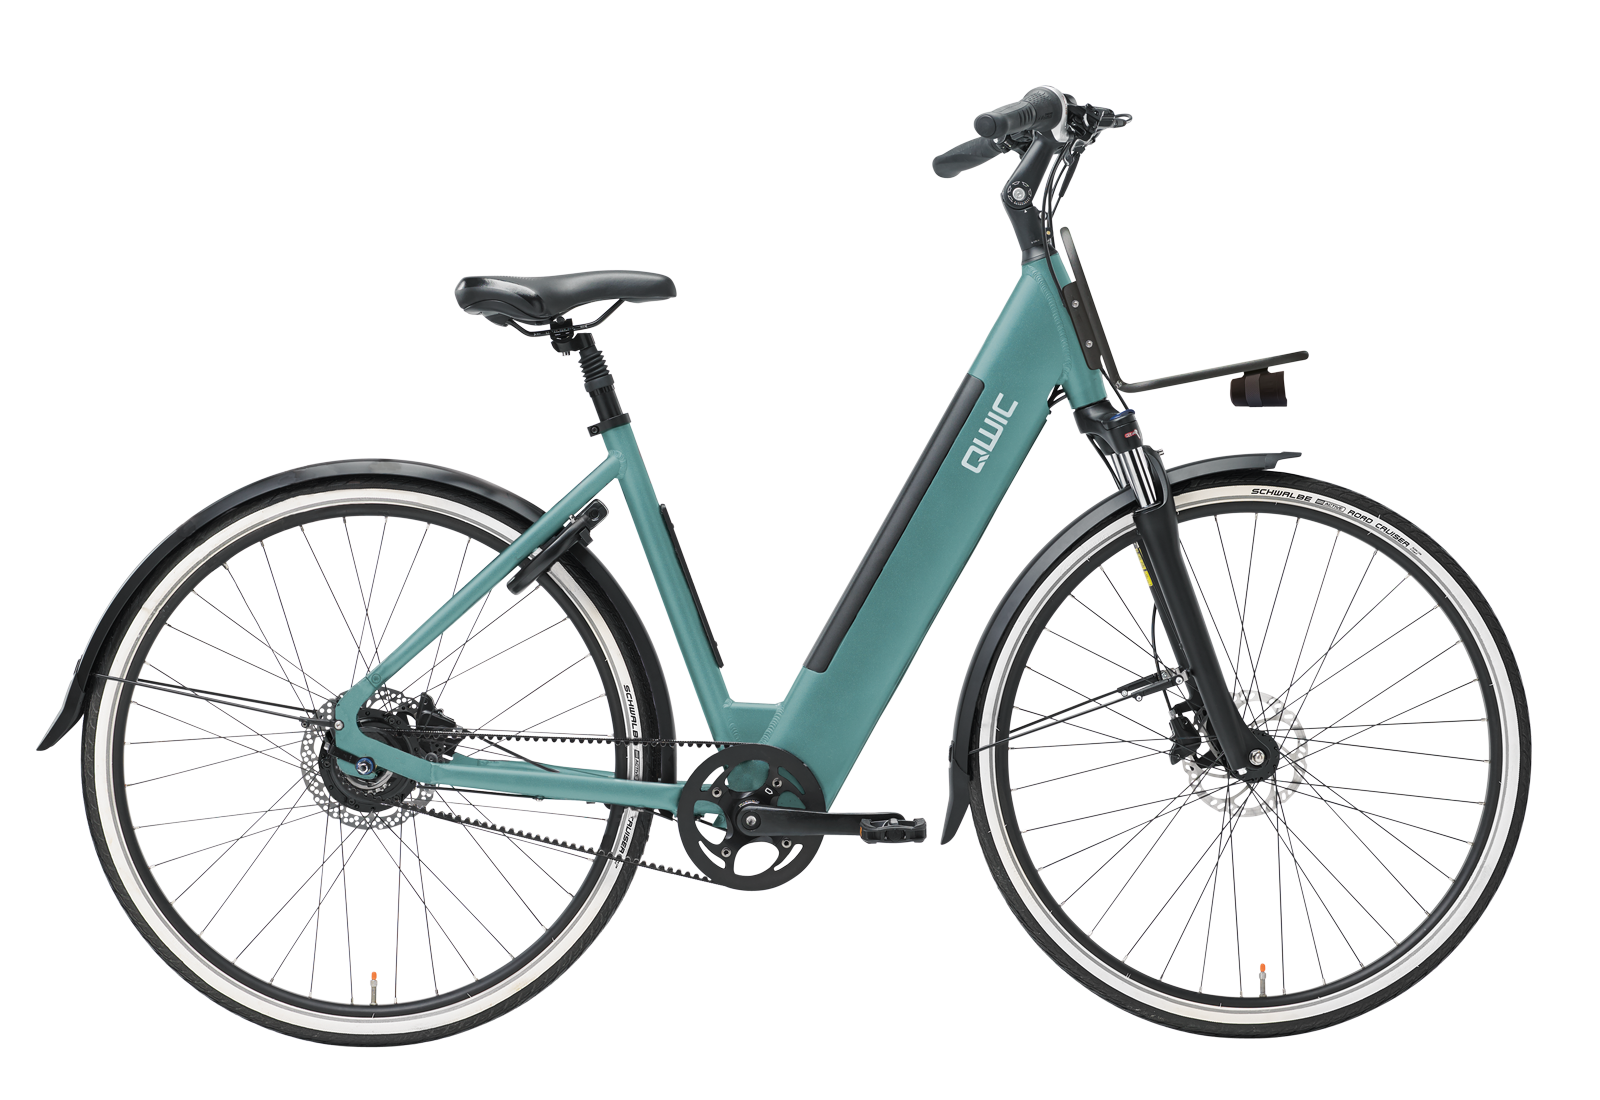 2019_Vrijstaand_sideview_Urban_R1_female_Turquoise